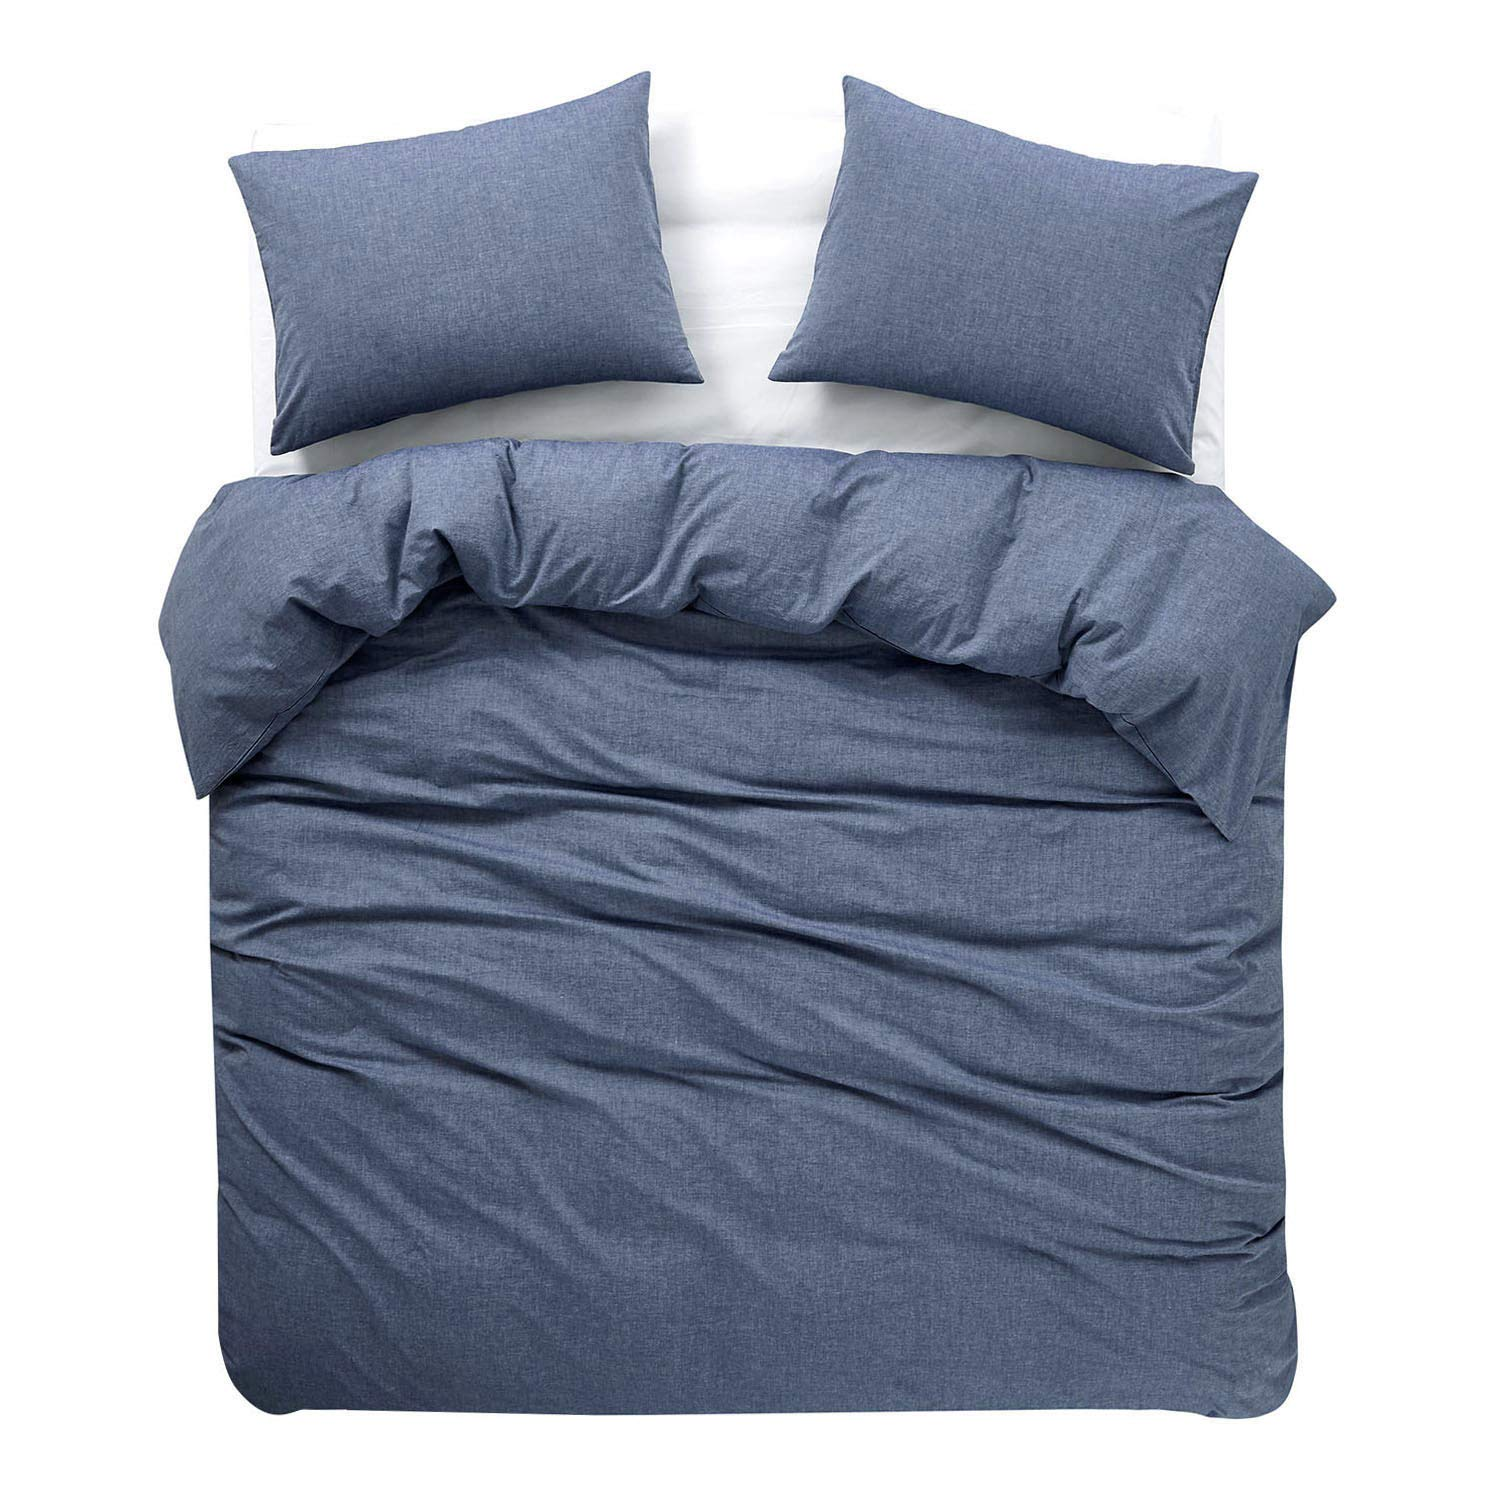 Light Blue Duvet Cover Set 100/% Washed Cotton Yarn Dyed Plain Solid Color Soft Bedding with Zipper Closure Corner Ties 3pcs, Twin Size Wake In Cloud